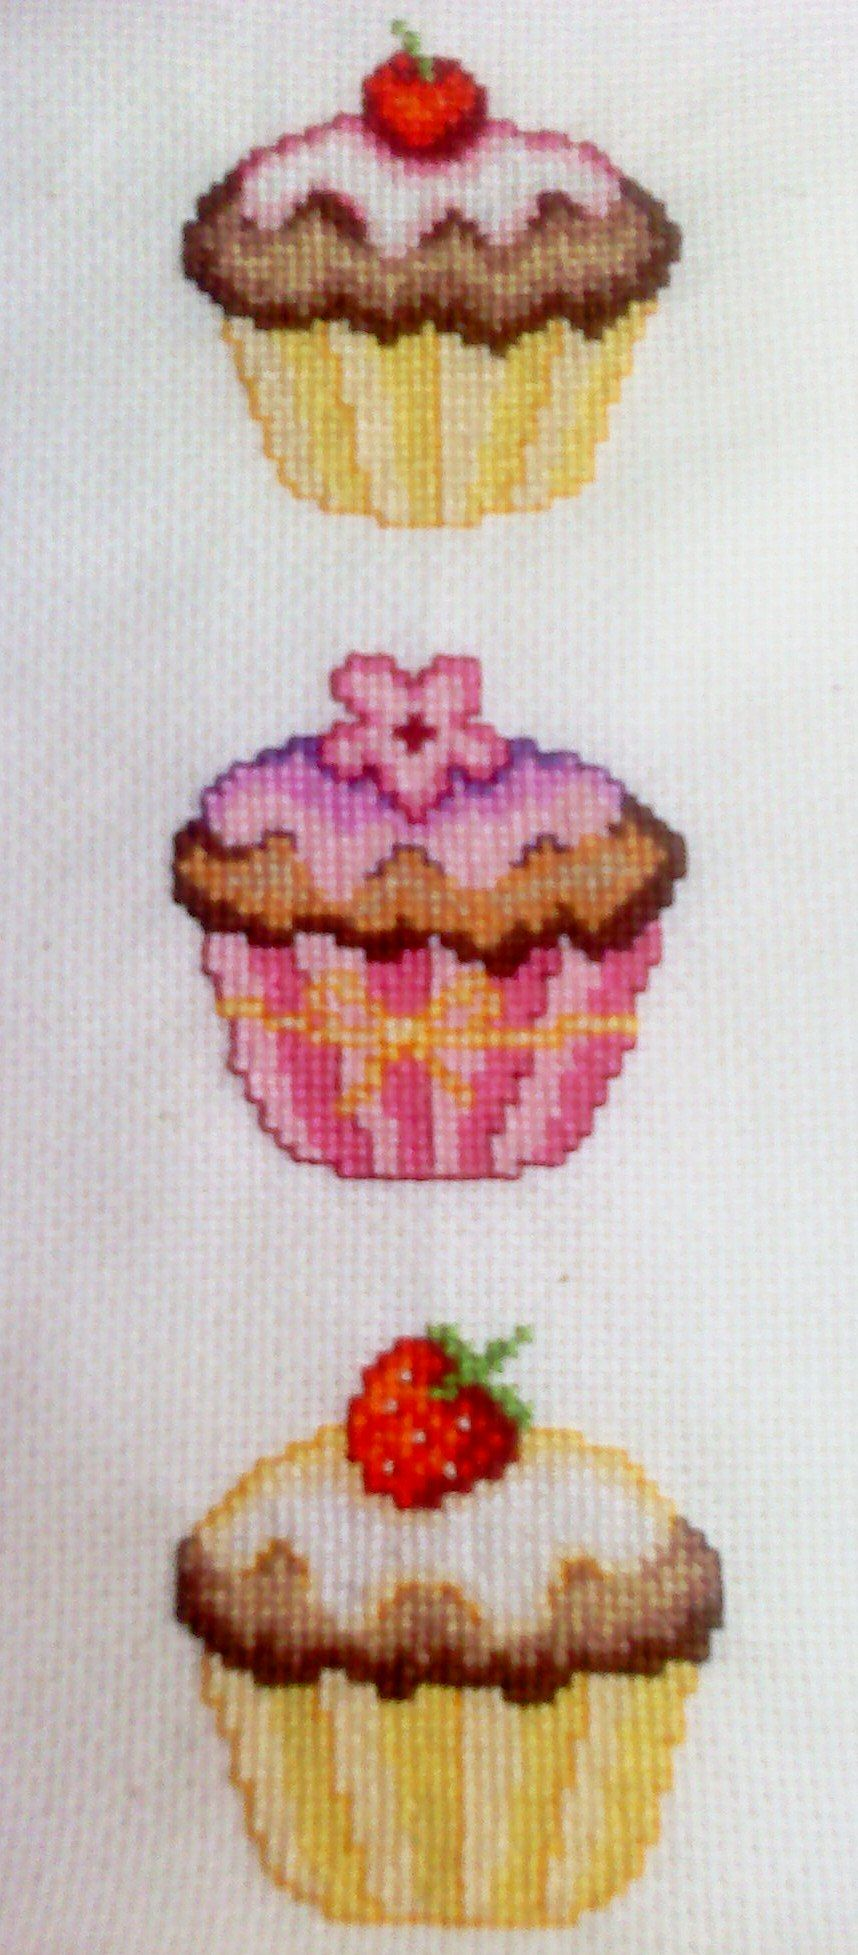 Cross Stitched Cupcakes